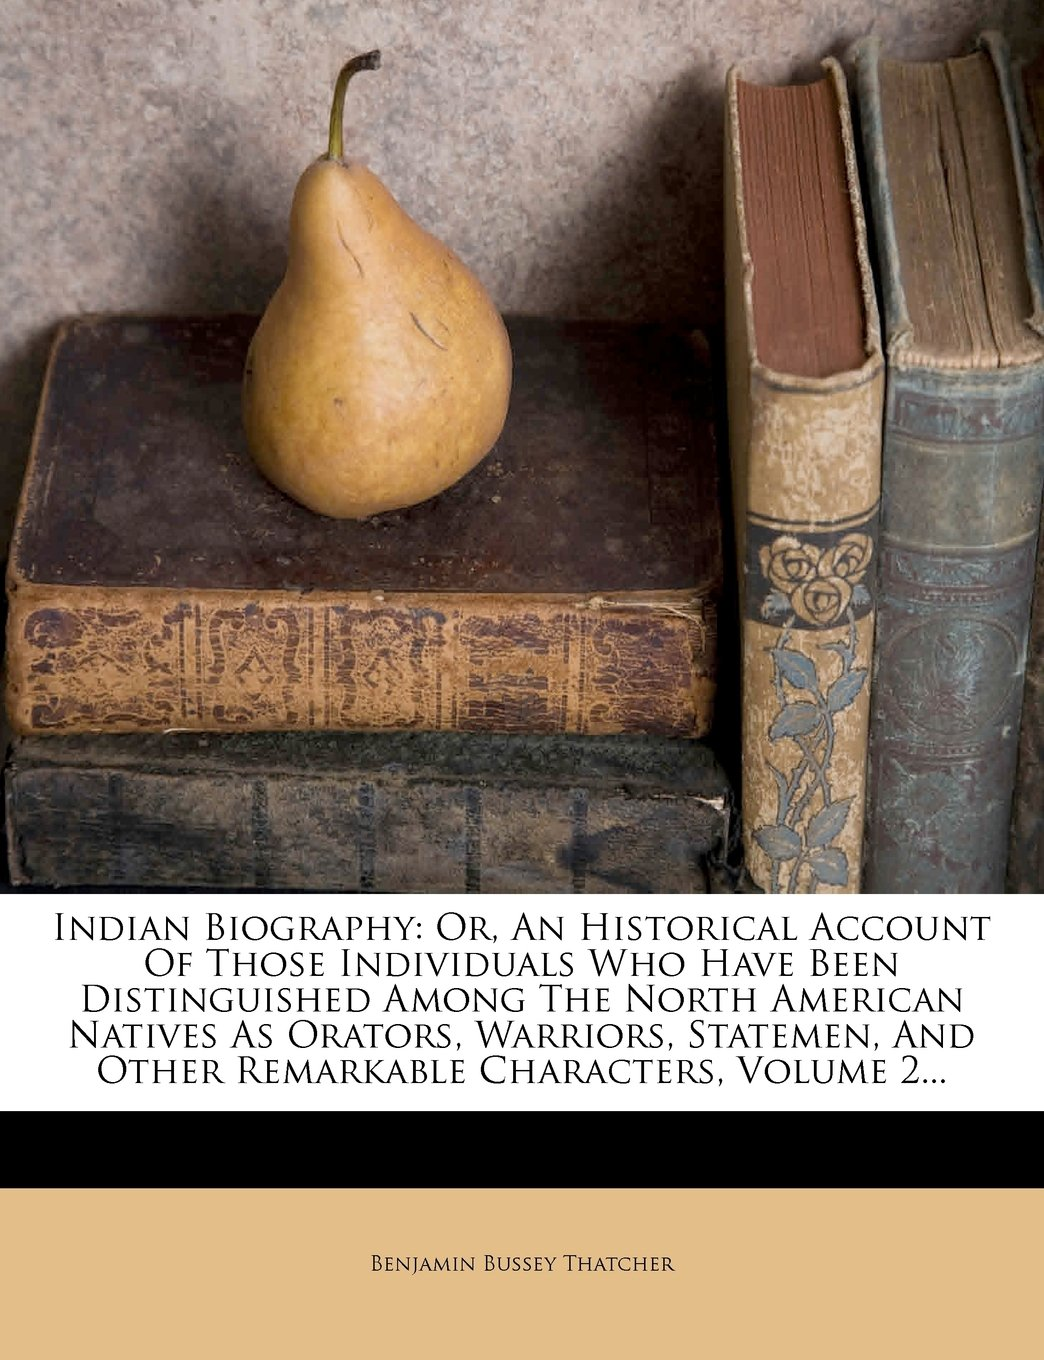 Indian Biography: Or, An Historical Account Of Those Individuals Who Have Been Distinguished Among The North American Natives As Orators, Warriors, ... And Other Remarkable Characters, Volume 2... pdf